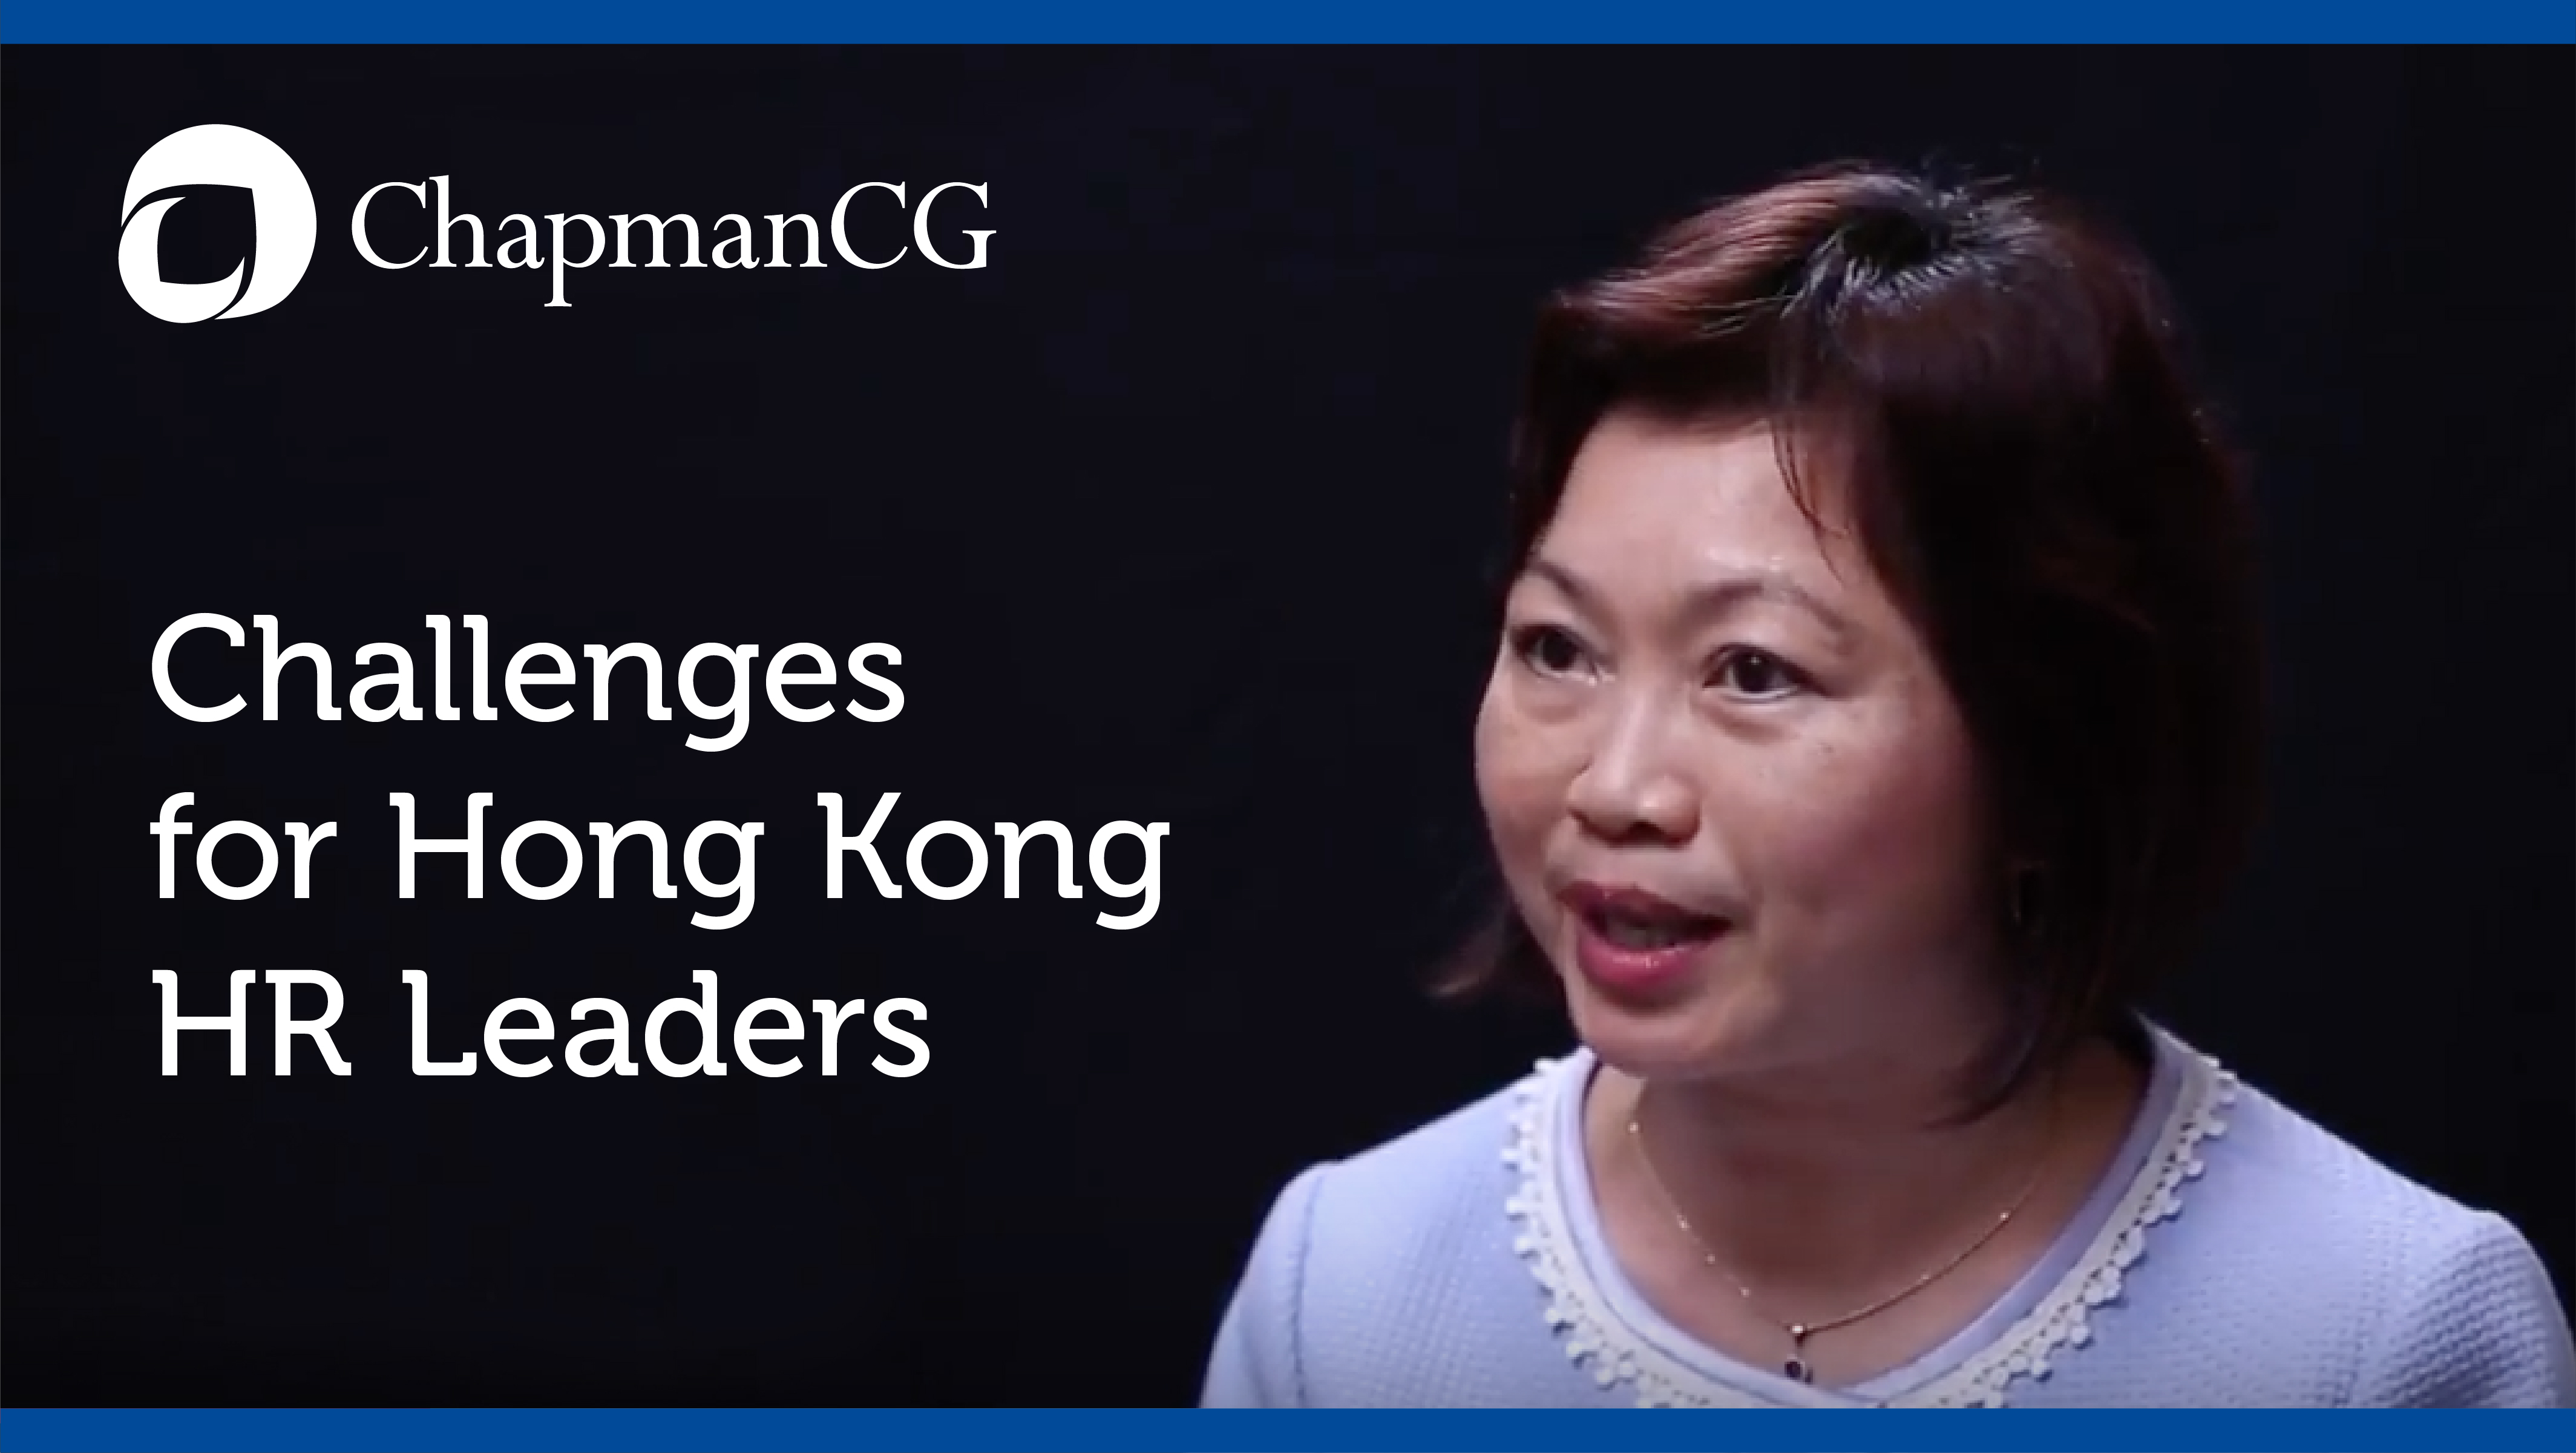 Challenges for Hong Kong HR Leaders